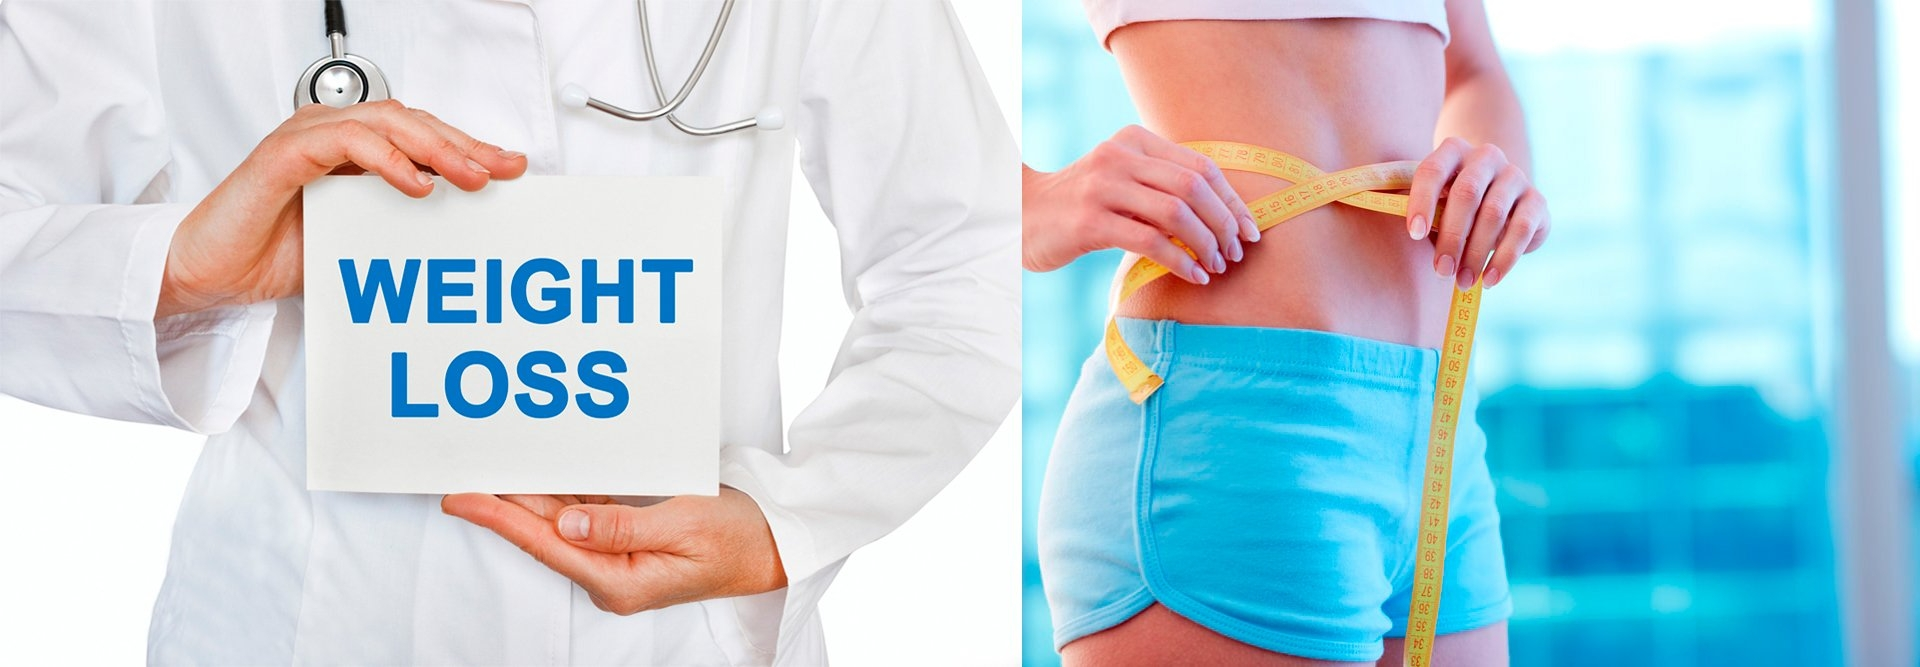 Weight Loss Surgery (@weightlossnyusa) Cover Image